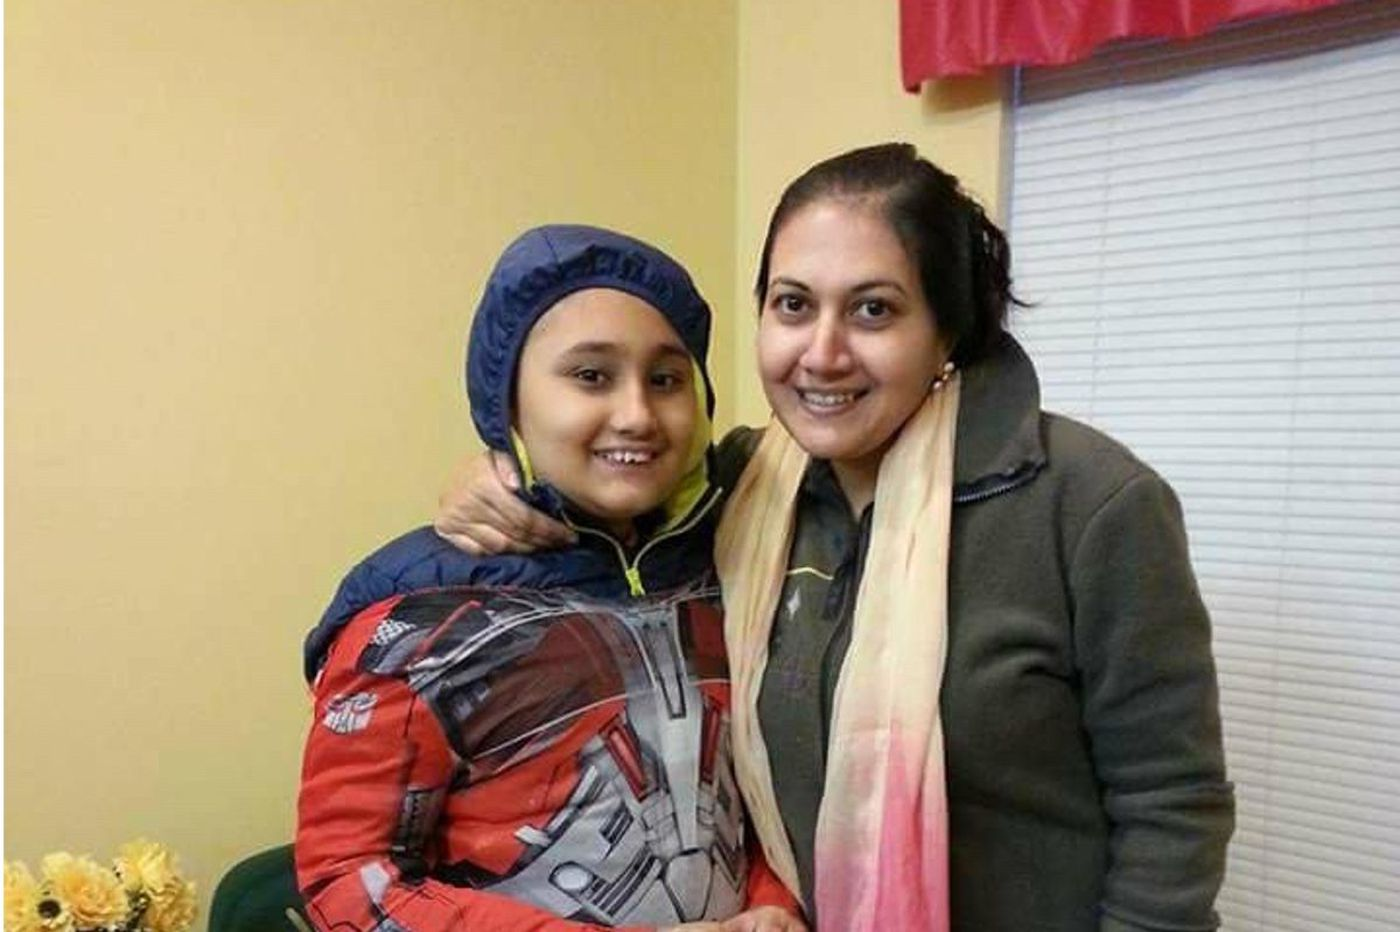 N.J. mom asks judge to maintain life support for son, now at Children's Hospital